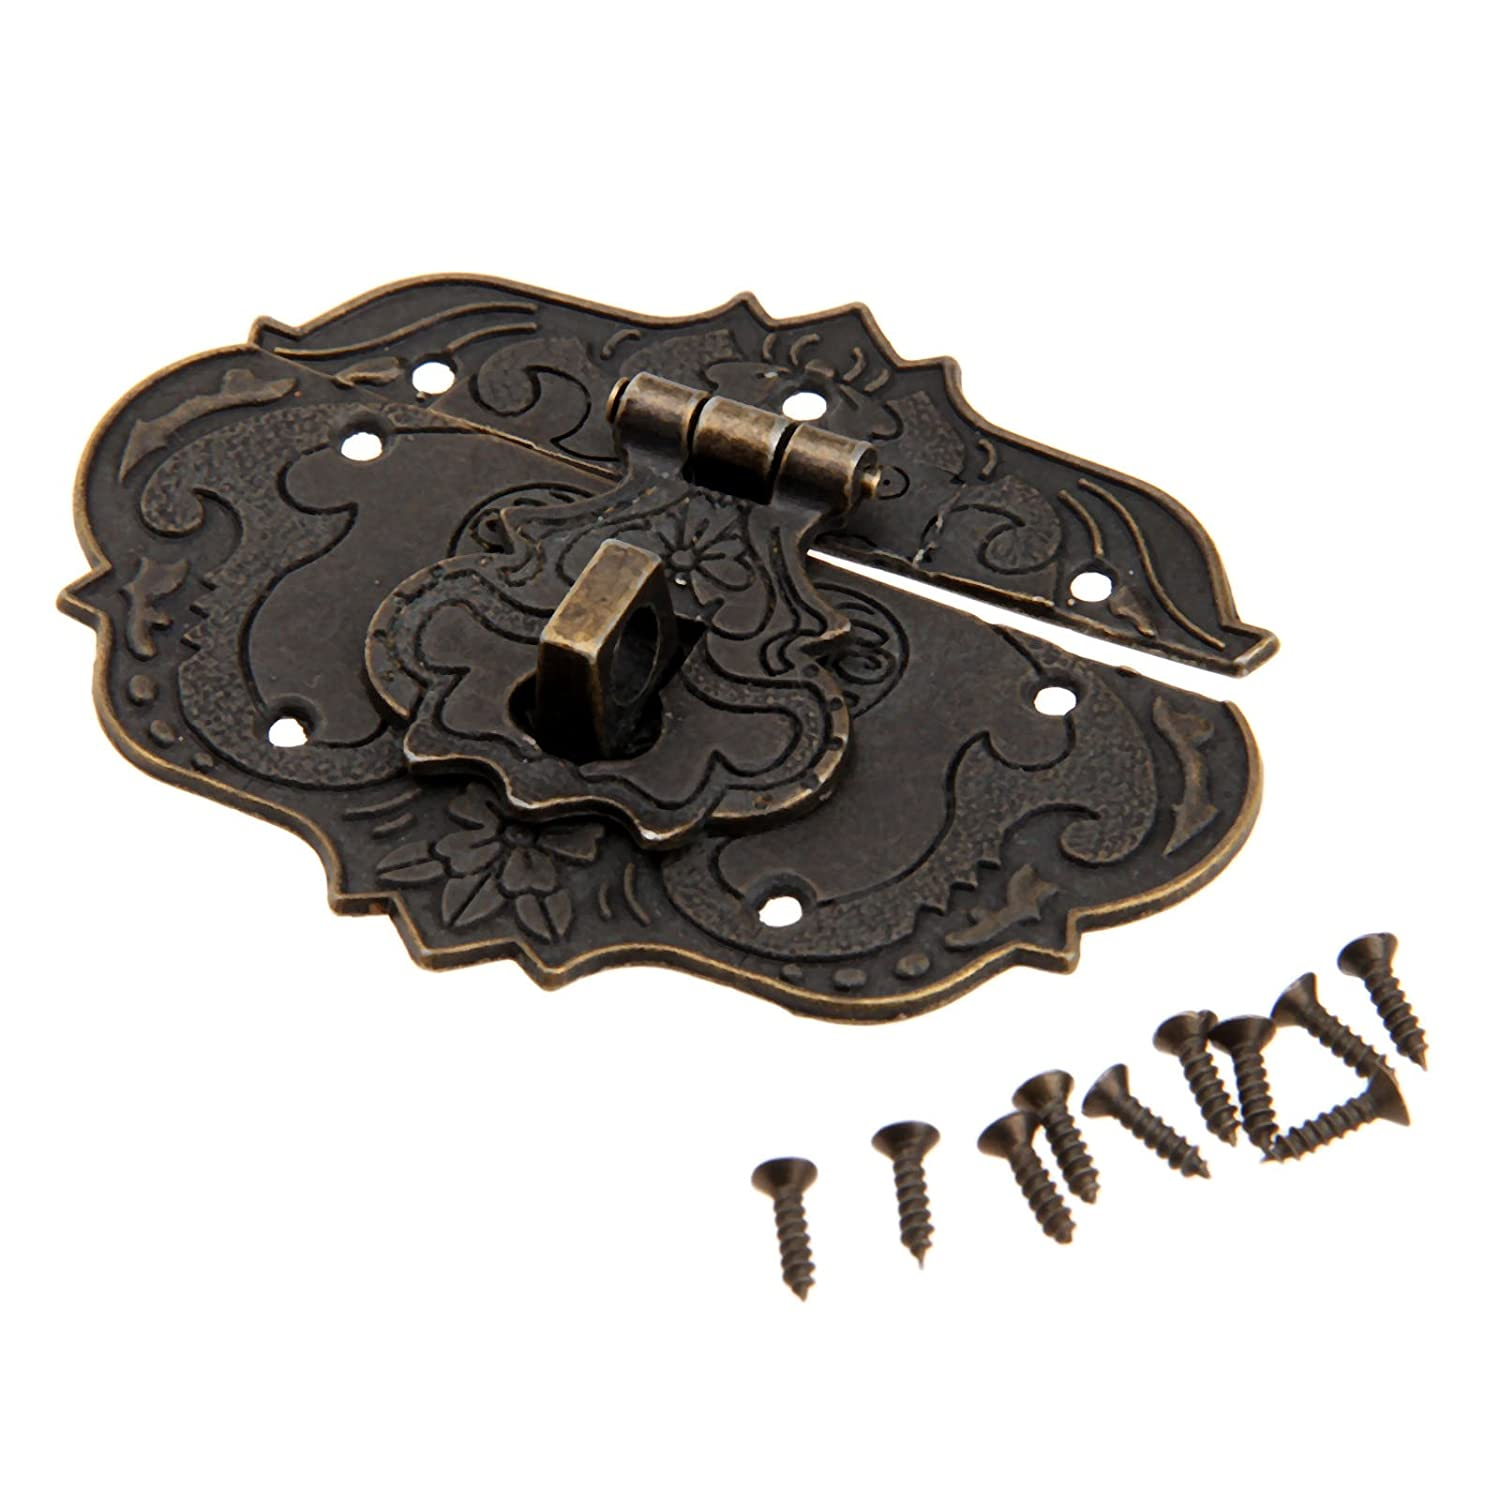 1Pc 3'*2.24' Antique Embossing Decorative Brass Hasp Clasp Latch Lock with Screws for European Style Jewelry Trinket Box Decoration Dophee